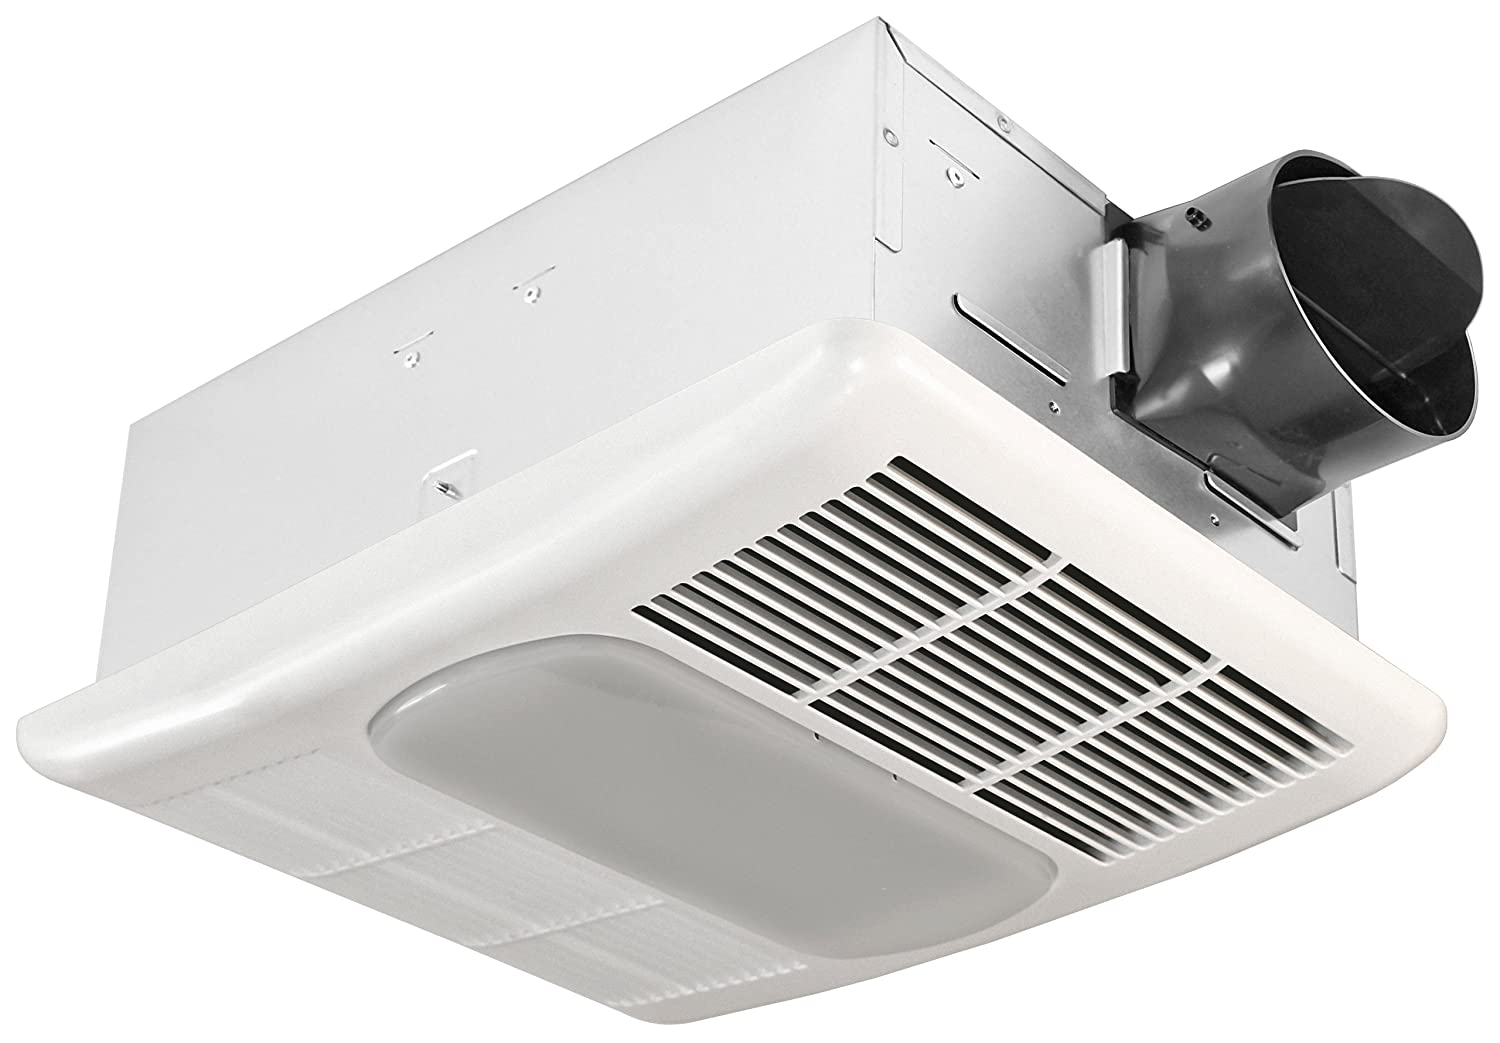 Delta BreezRadiance RADL CFM Exhaust Bath FanCFL Light And - Bathroom exhaust fan 150 cfm for bathroom decor ideas